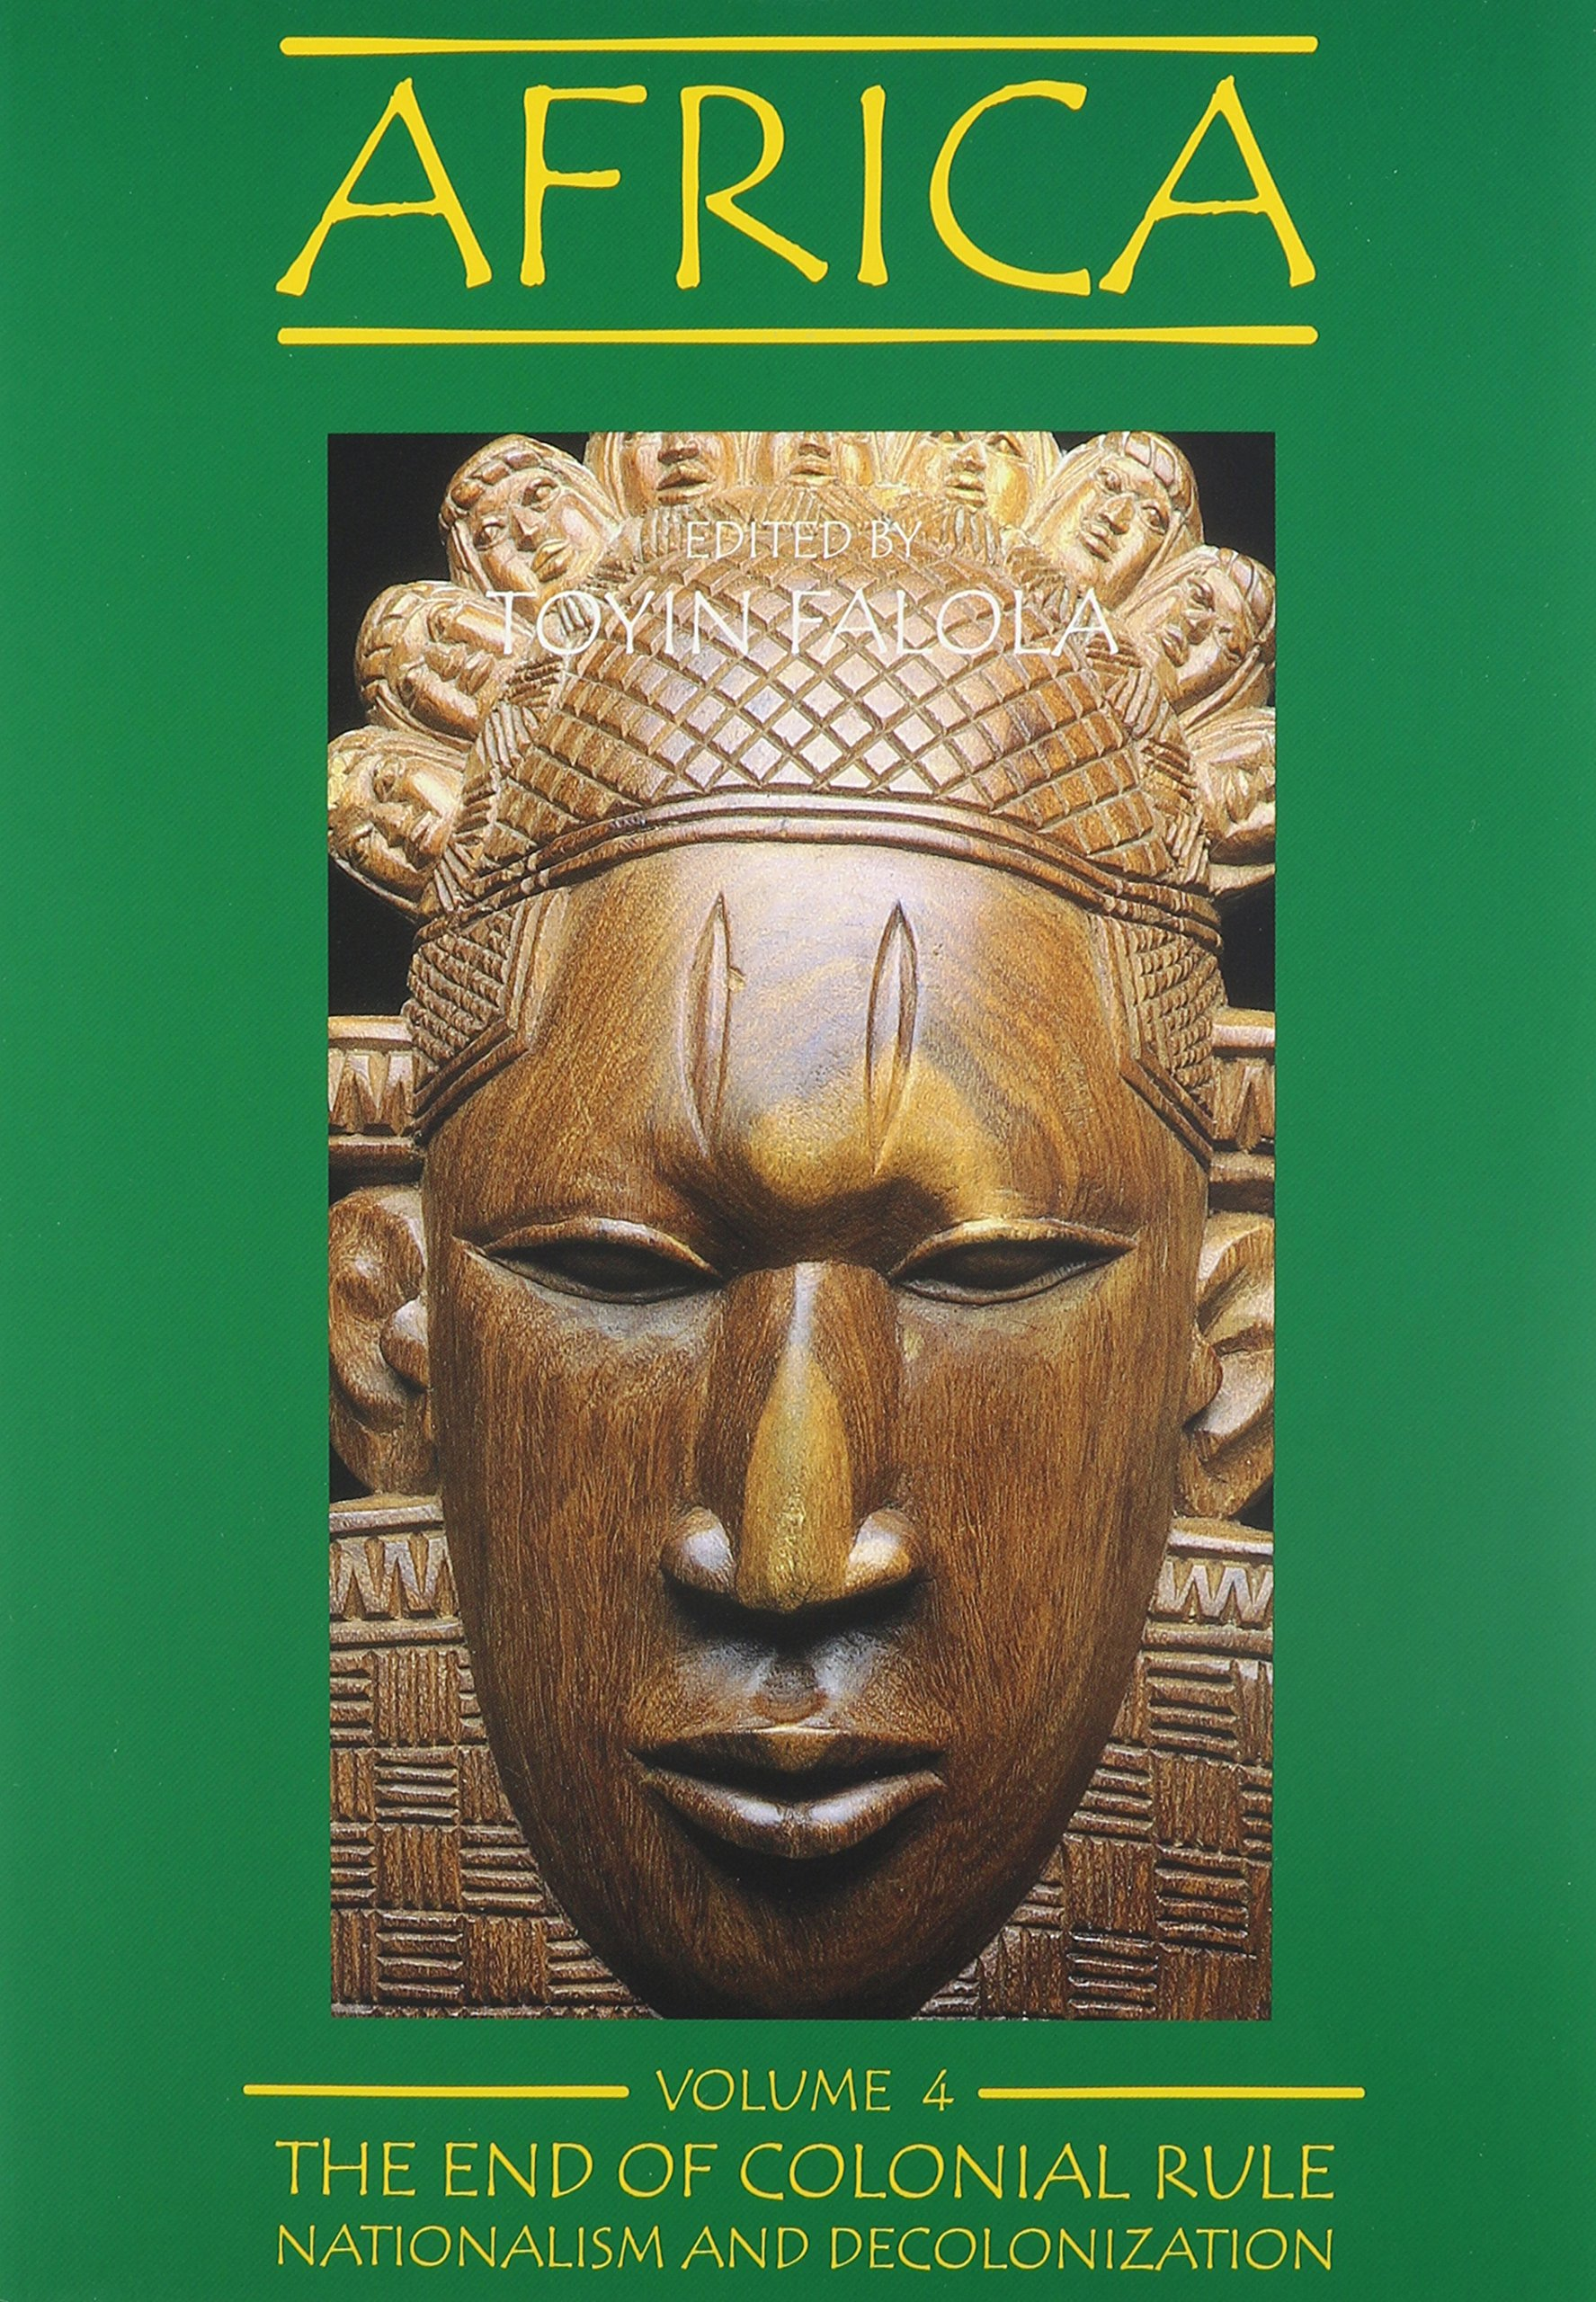 Africa, vol. 4: The End of Colonial Rule: Nationalism and Decolonization ebook